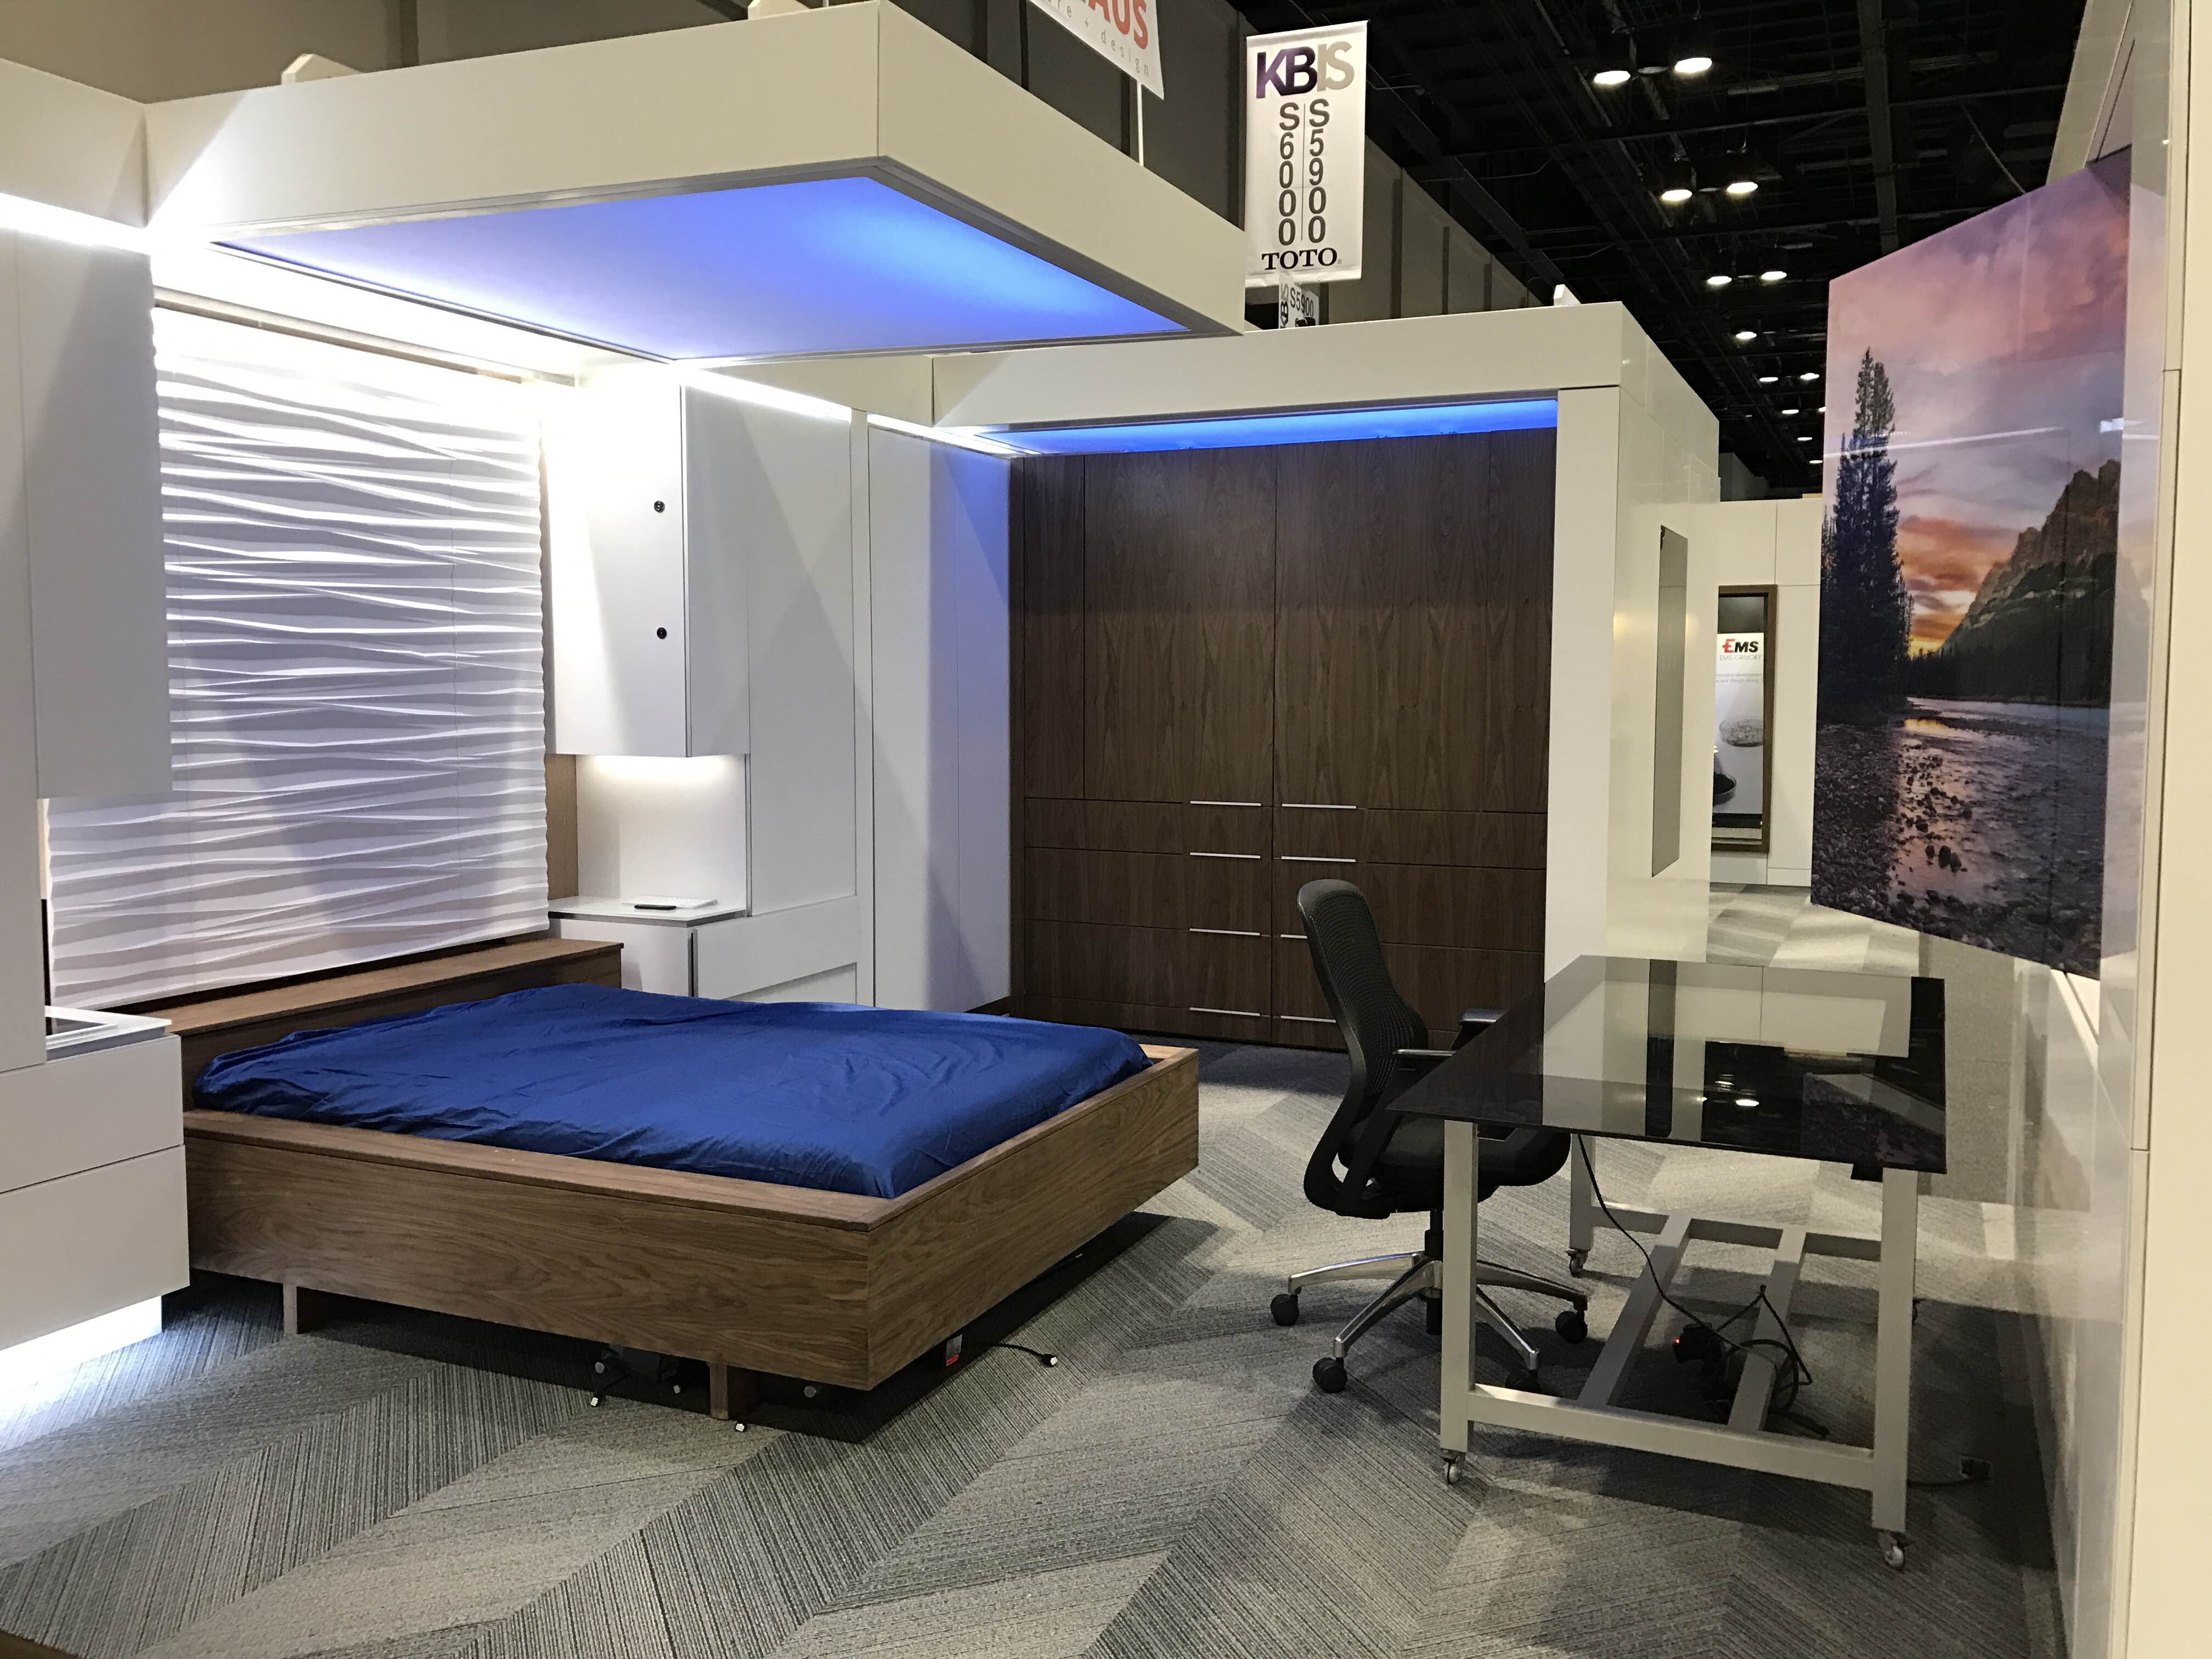 The office converts to a guest bedroom with a simple voice command or  gesture. Virginia Tech FutureHAUS wows crowds at KBIS   News   Virginia Tech